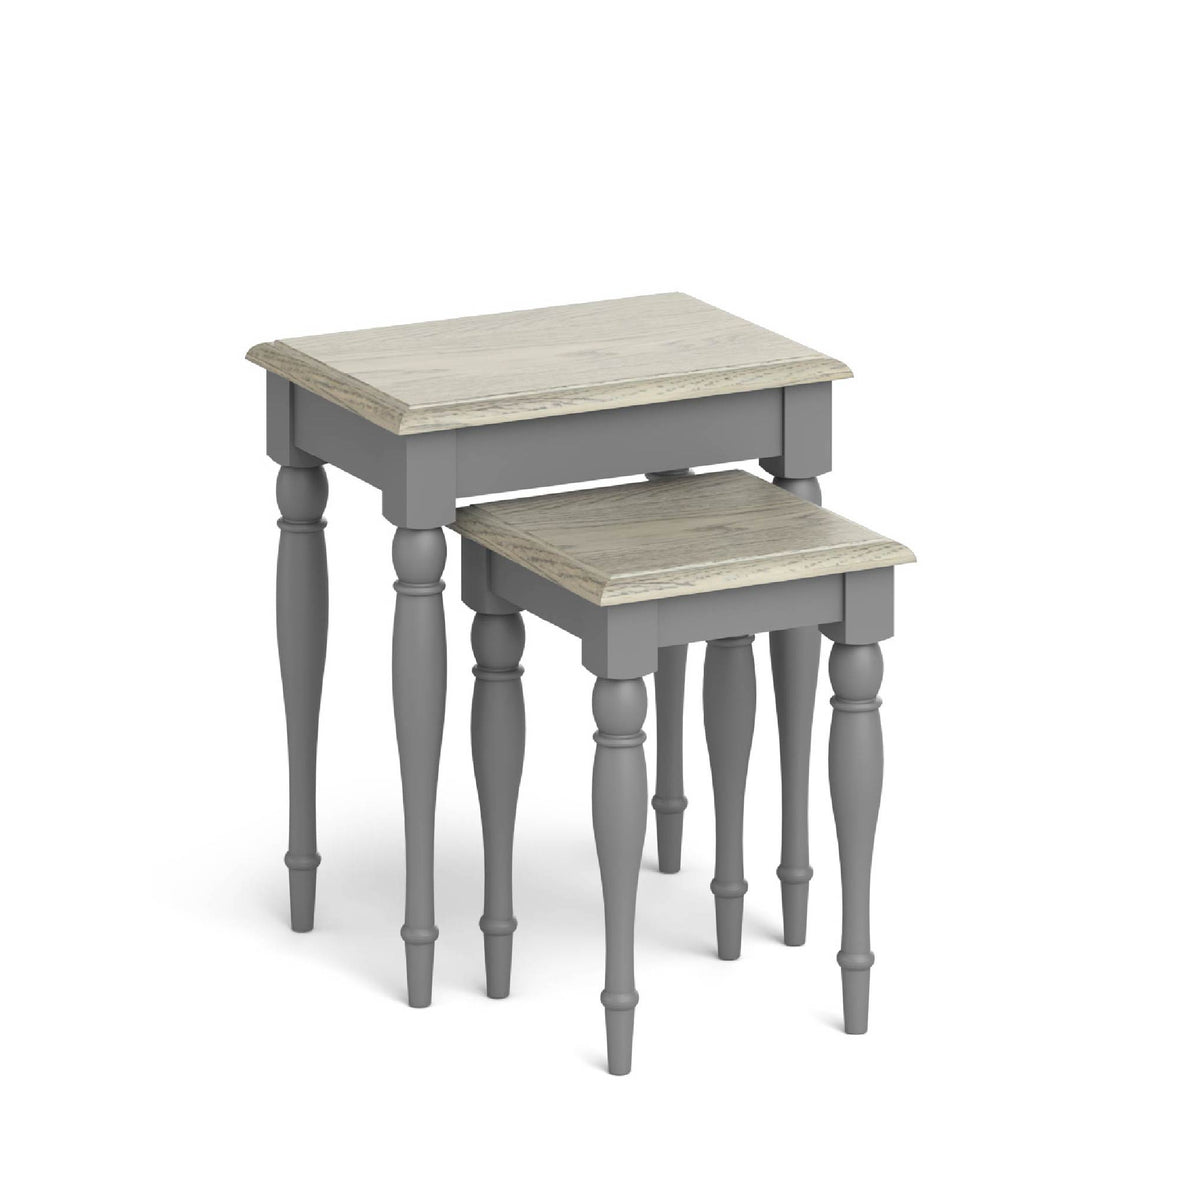 The Mulsanne Grey French Style Nest of Tables with Oak Tops from Roseland Furniture